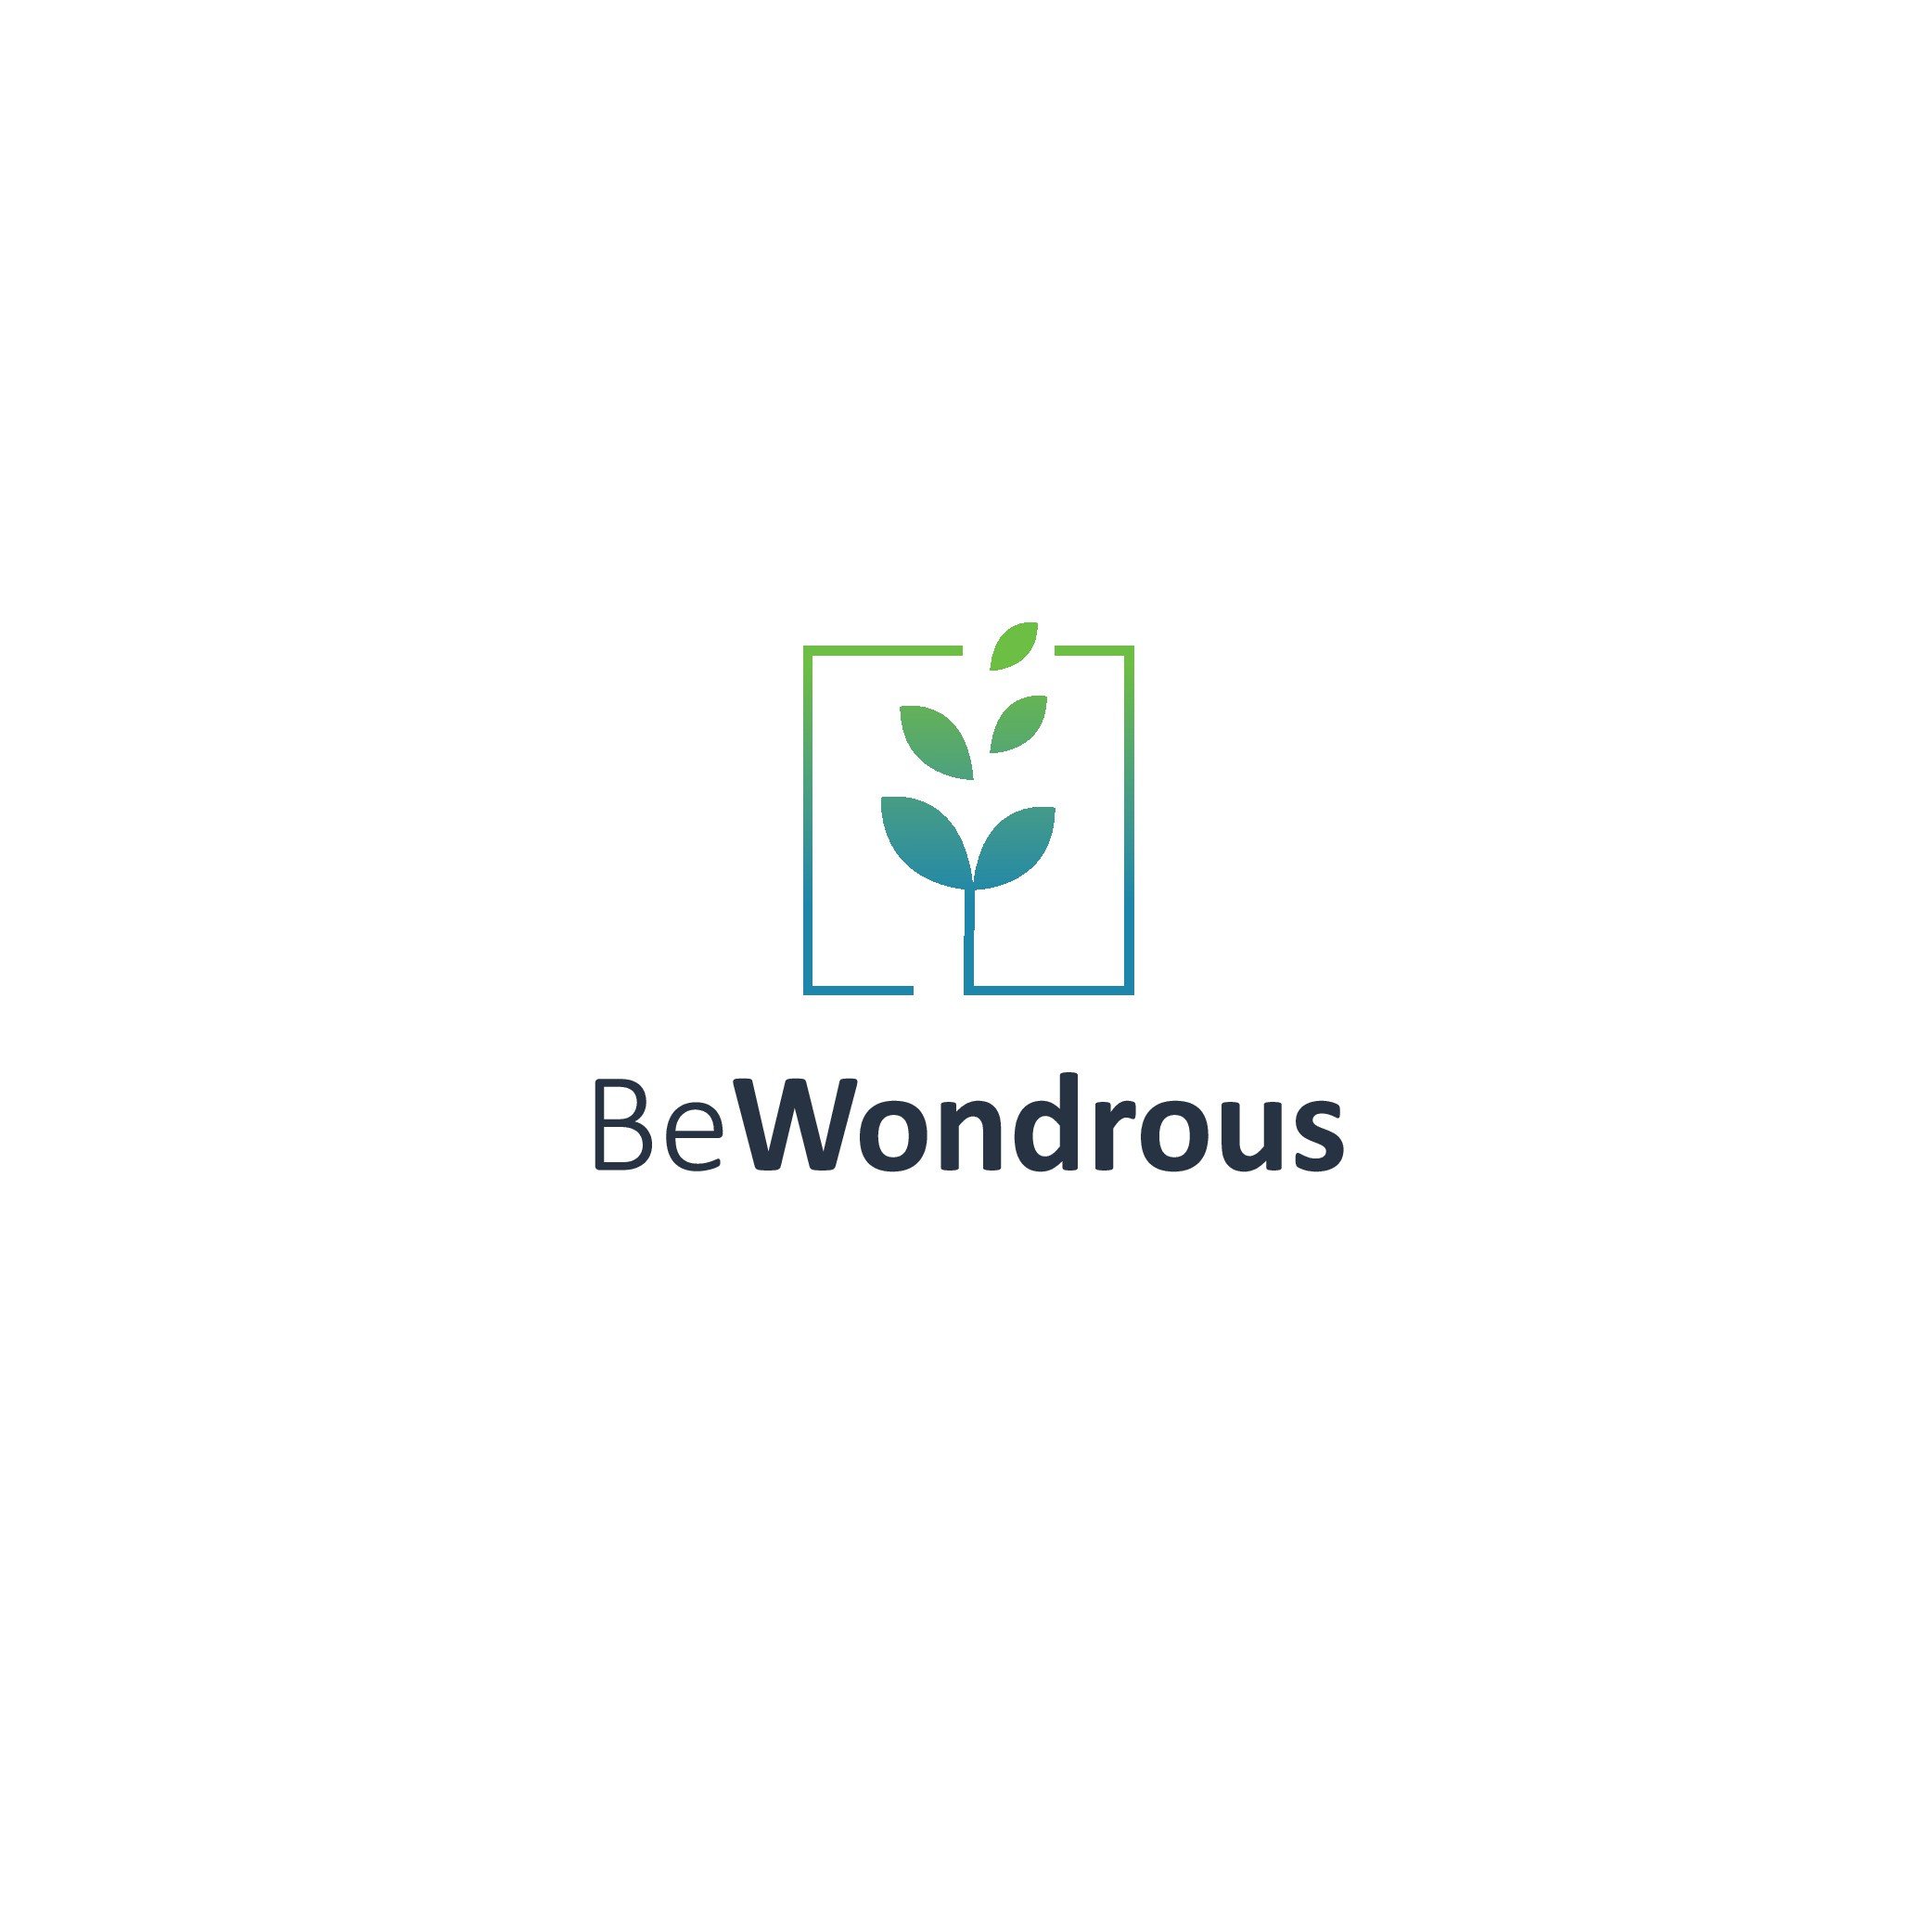 BeWondrous needs a relentlessly optimistic logo to help save the planet.